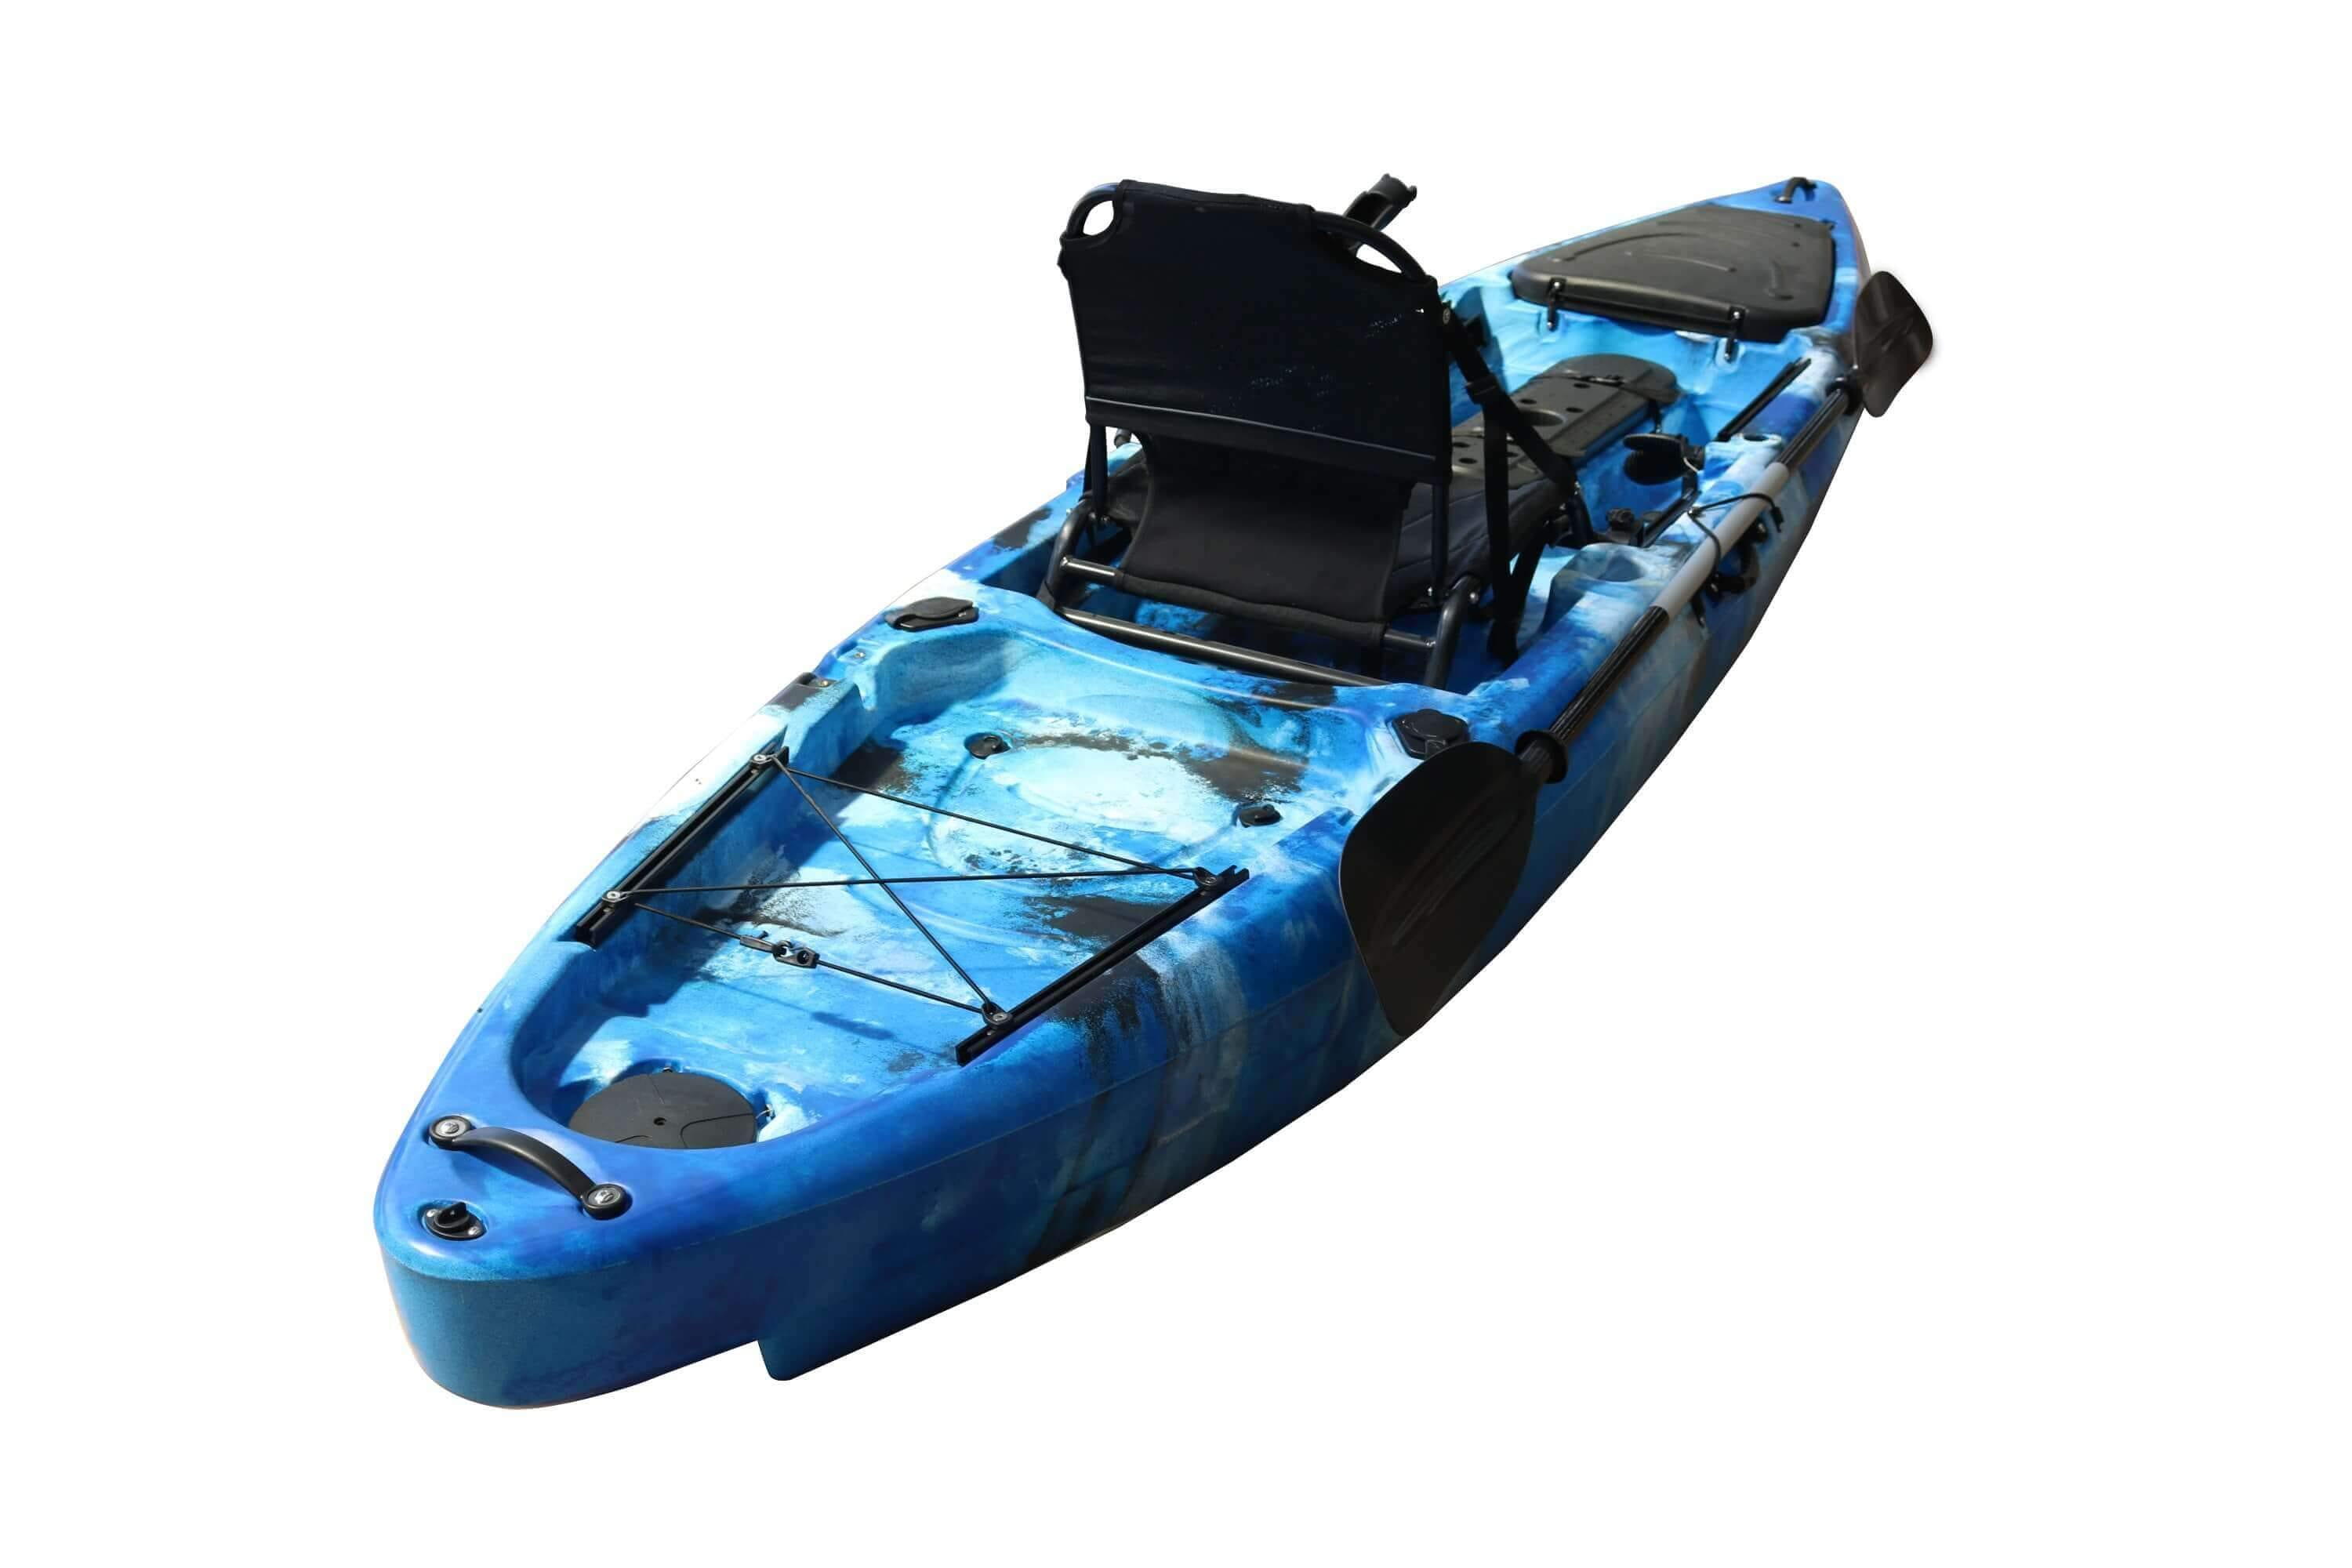 Trevally - 11 Foot Fishing Kayak